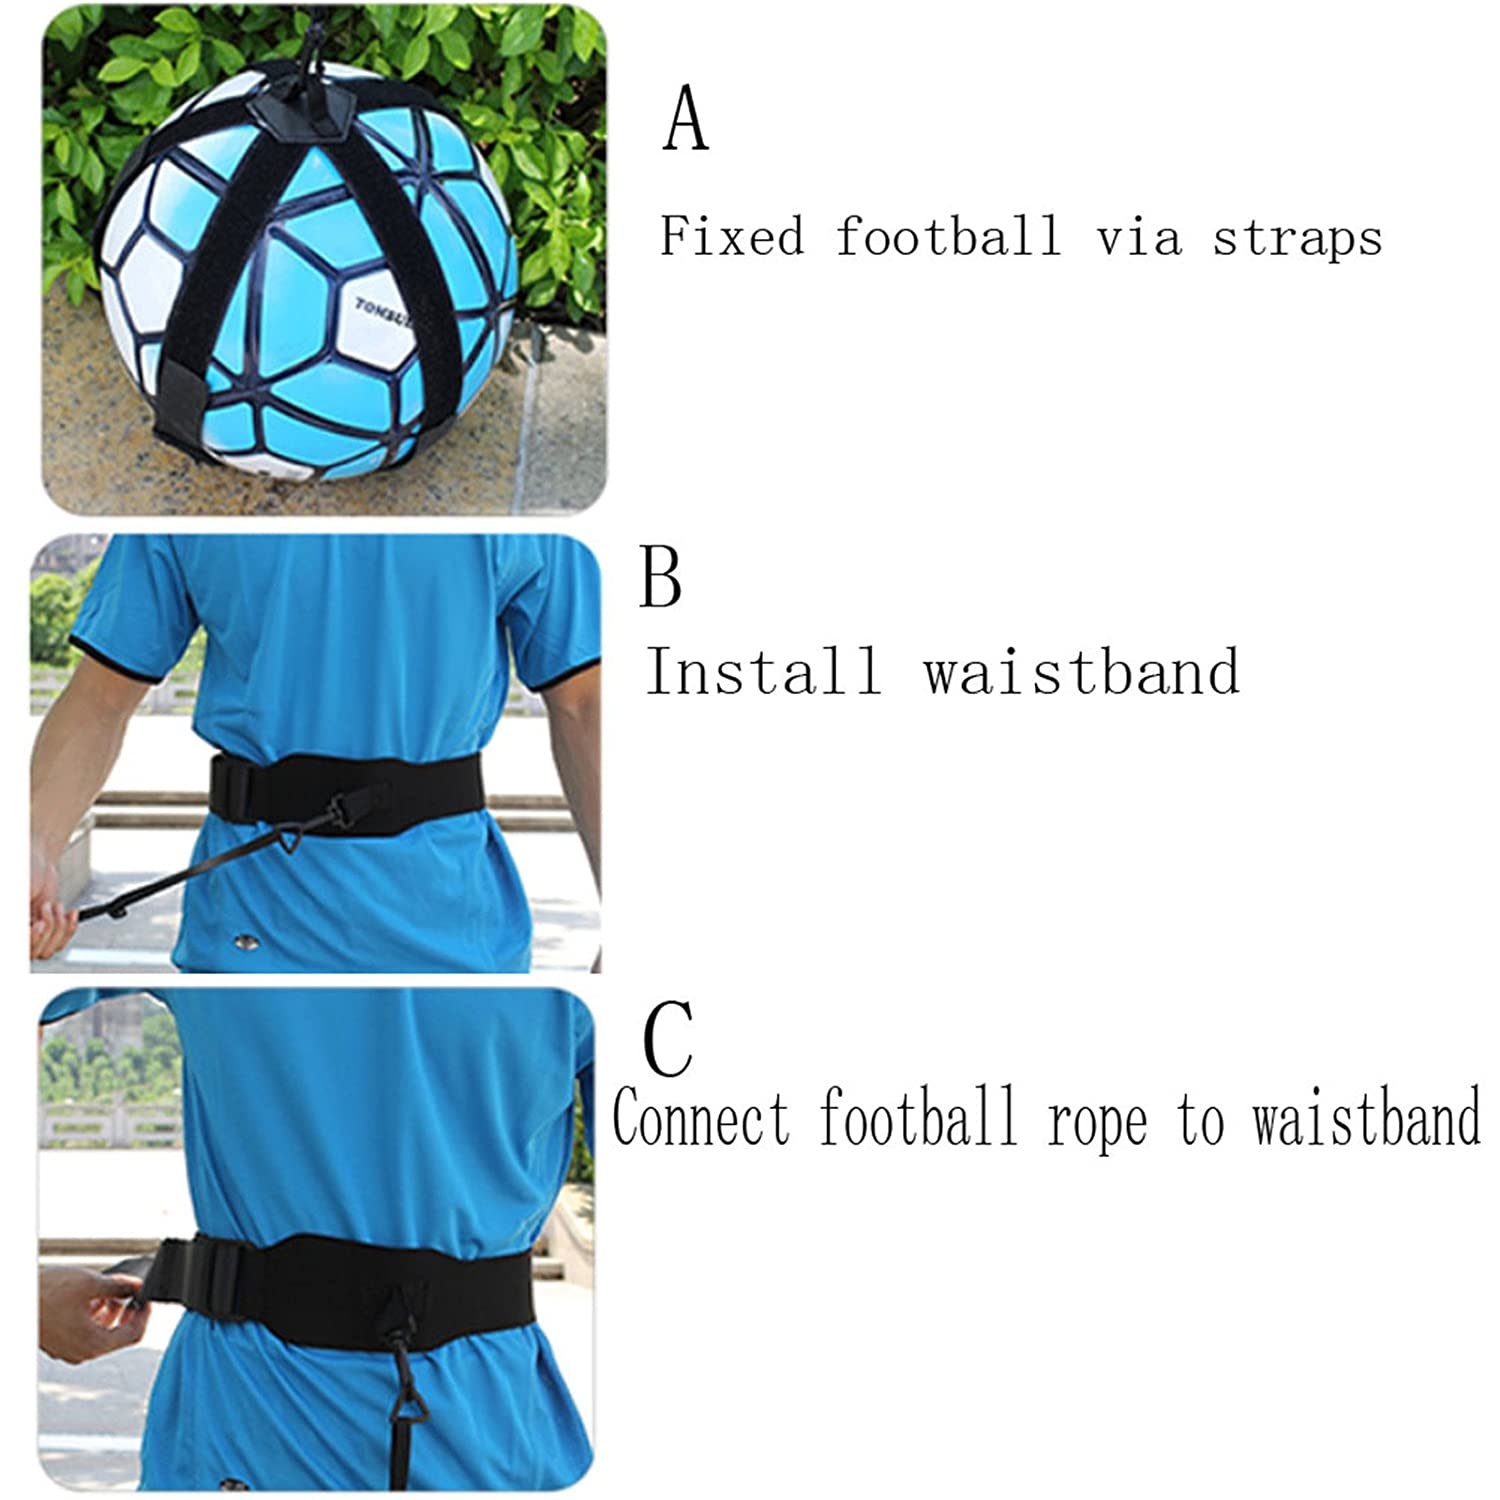 QPKUNG Soccer Trainers Soccer Football Practice Equipment Solo Practice Traning Aid for Passing the Ball Catching the Ball and Ball Control Practicing.